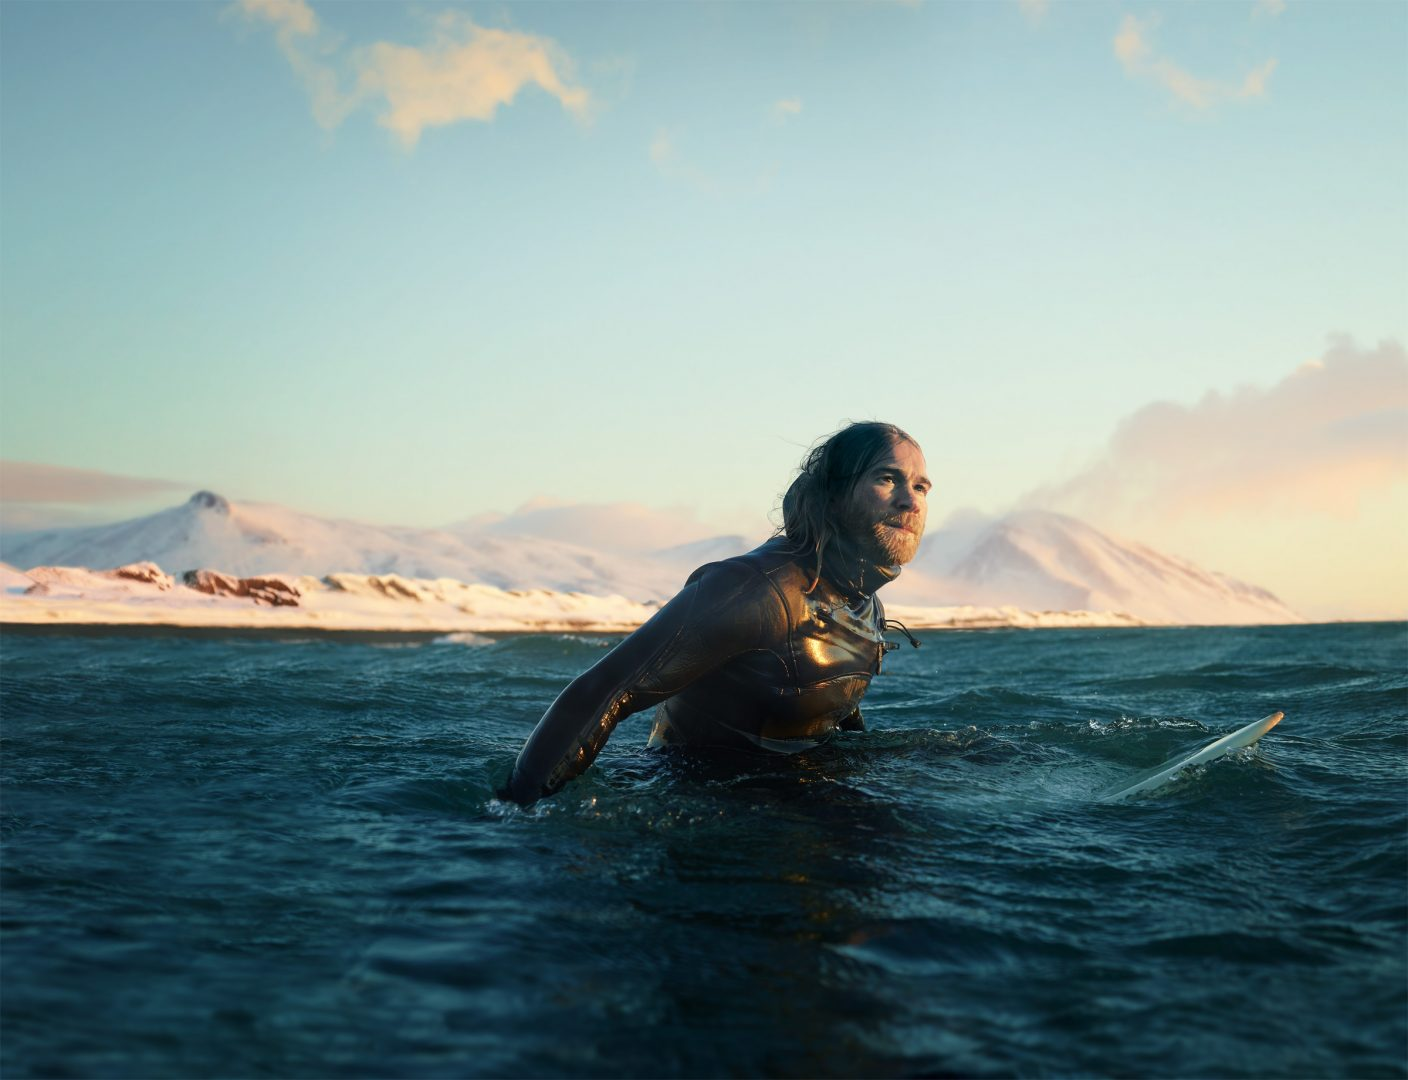 man surfing at sunrise in iceland with snowy mountains in background photo by Todd Antony